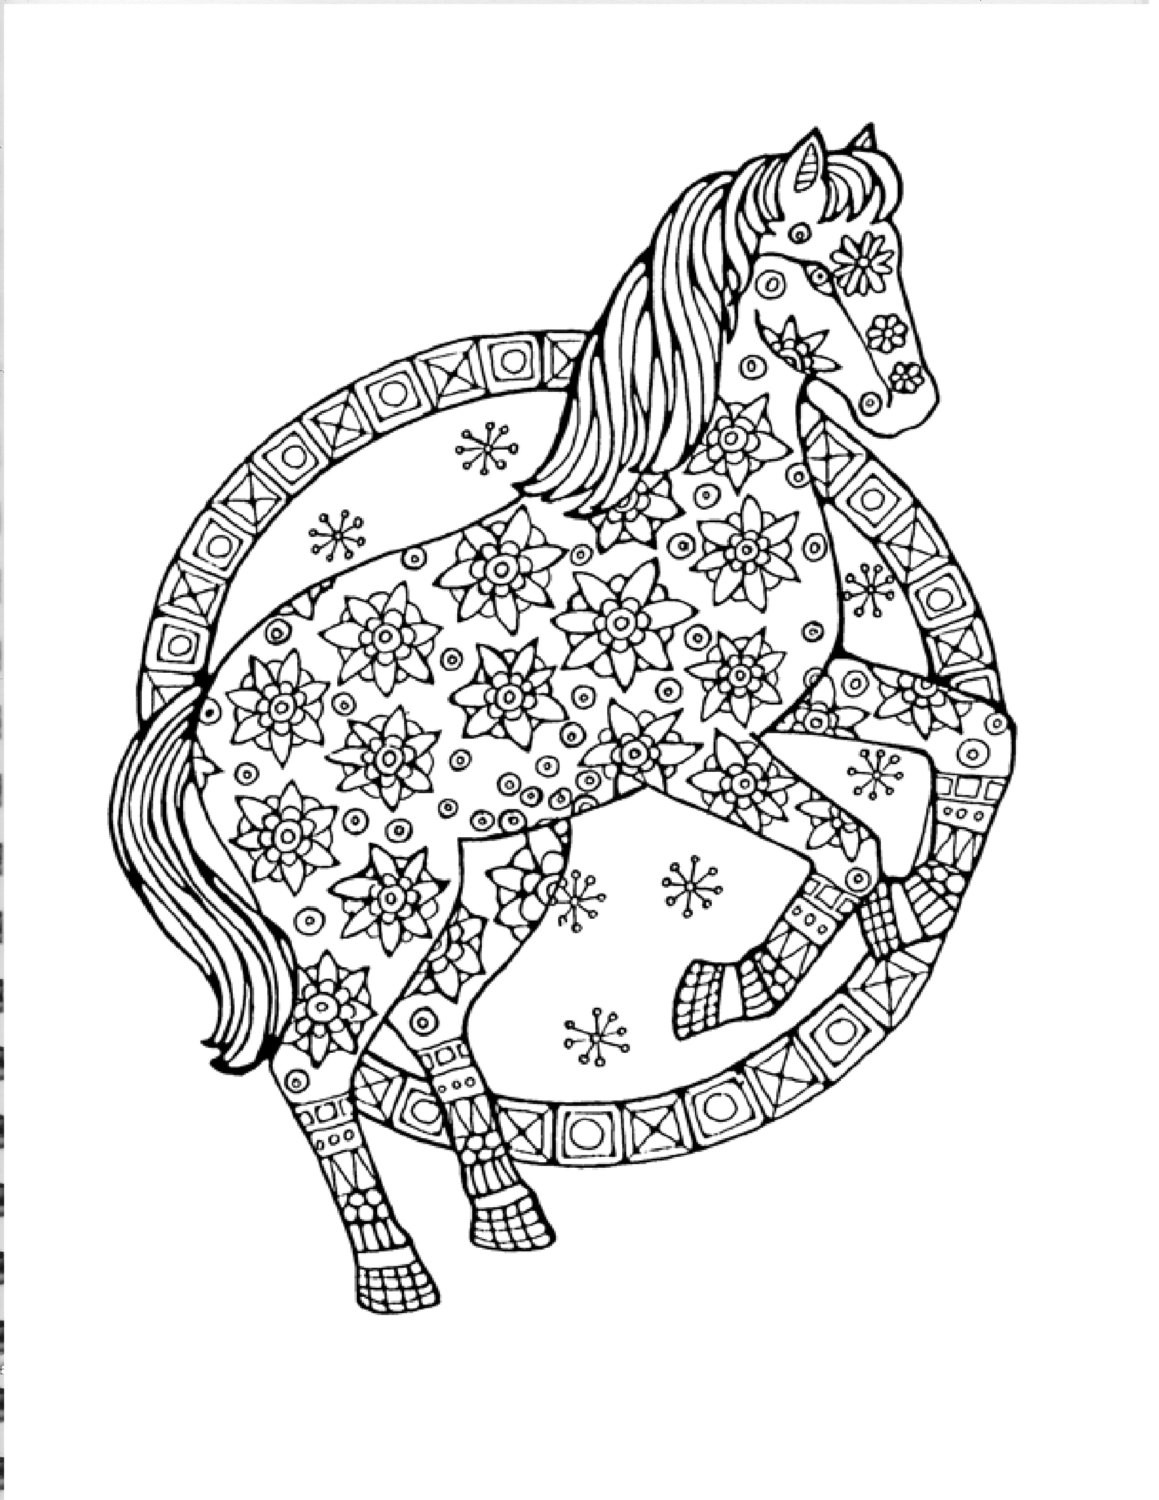 Printable Horse Coloring Pages For Adults  Adult Horse Coloring Pages